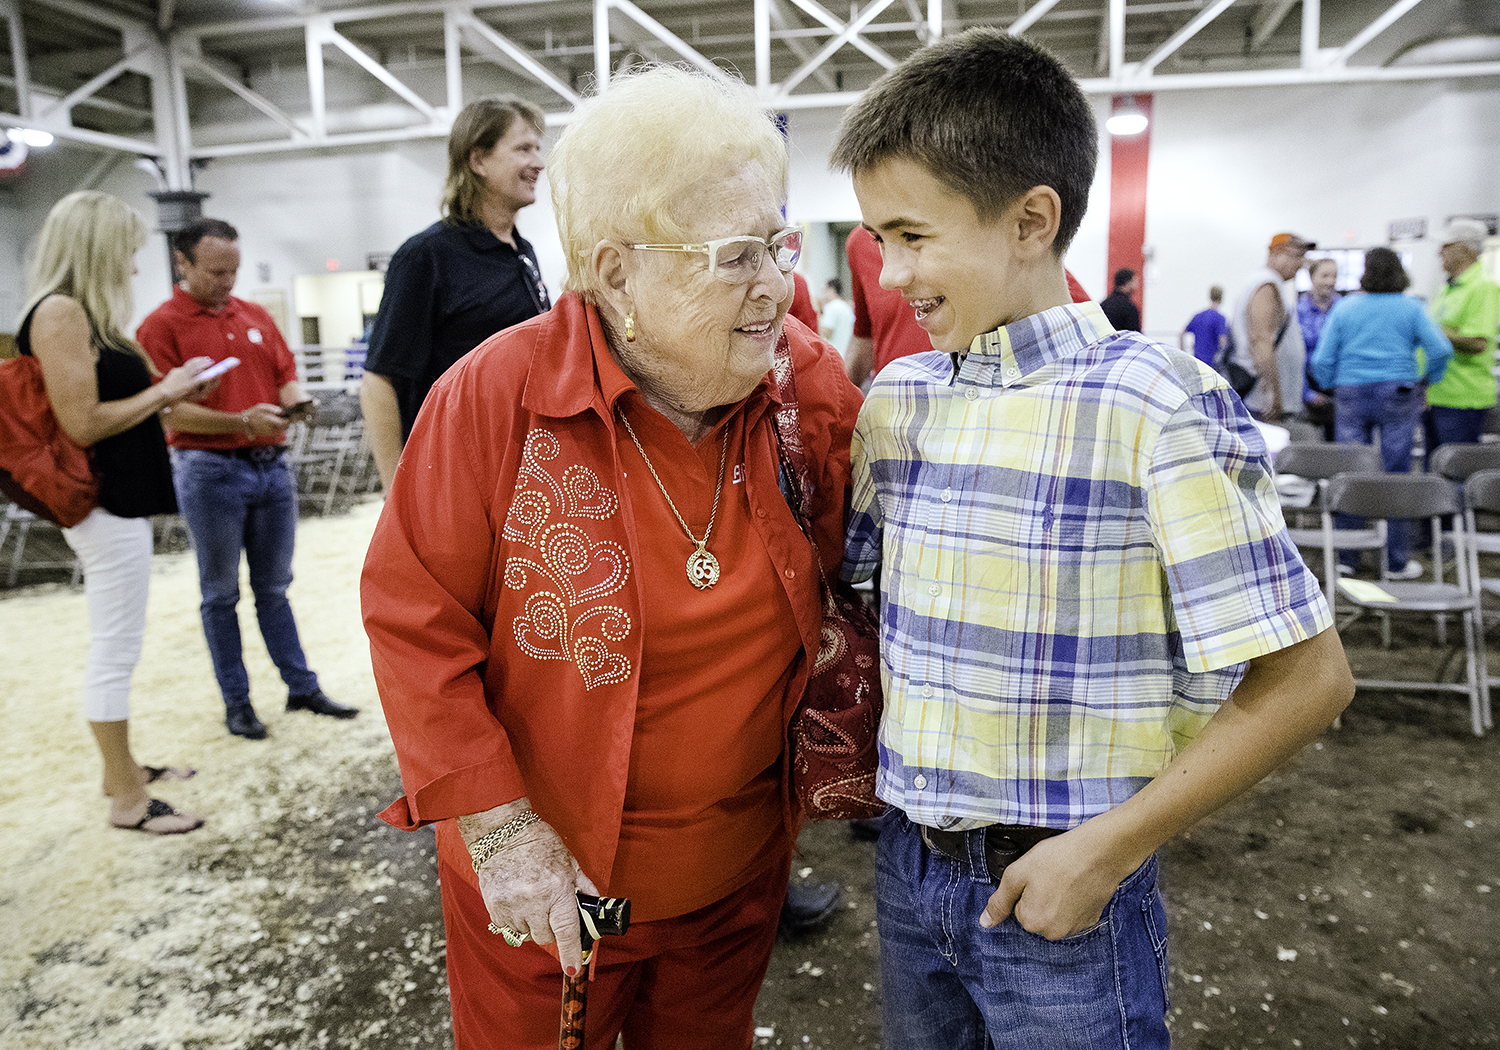 Evelyn Brandt Thomas, founder of Brandt Consolidated, congratulates Adam Miller after his Grand Champion Steer sold for $60,000 at the Governor's Sale of Champions in the Livestock Center at the Illinois State Fair Tuesday, Aug. 14, 2018. [Ted Schurter/The State Journal-Register]